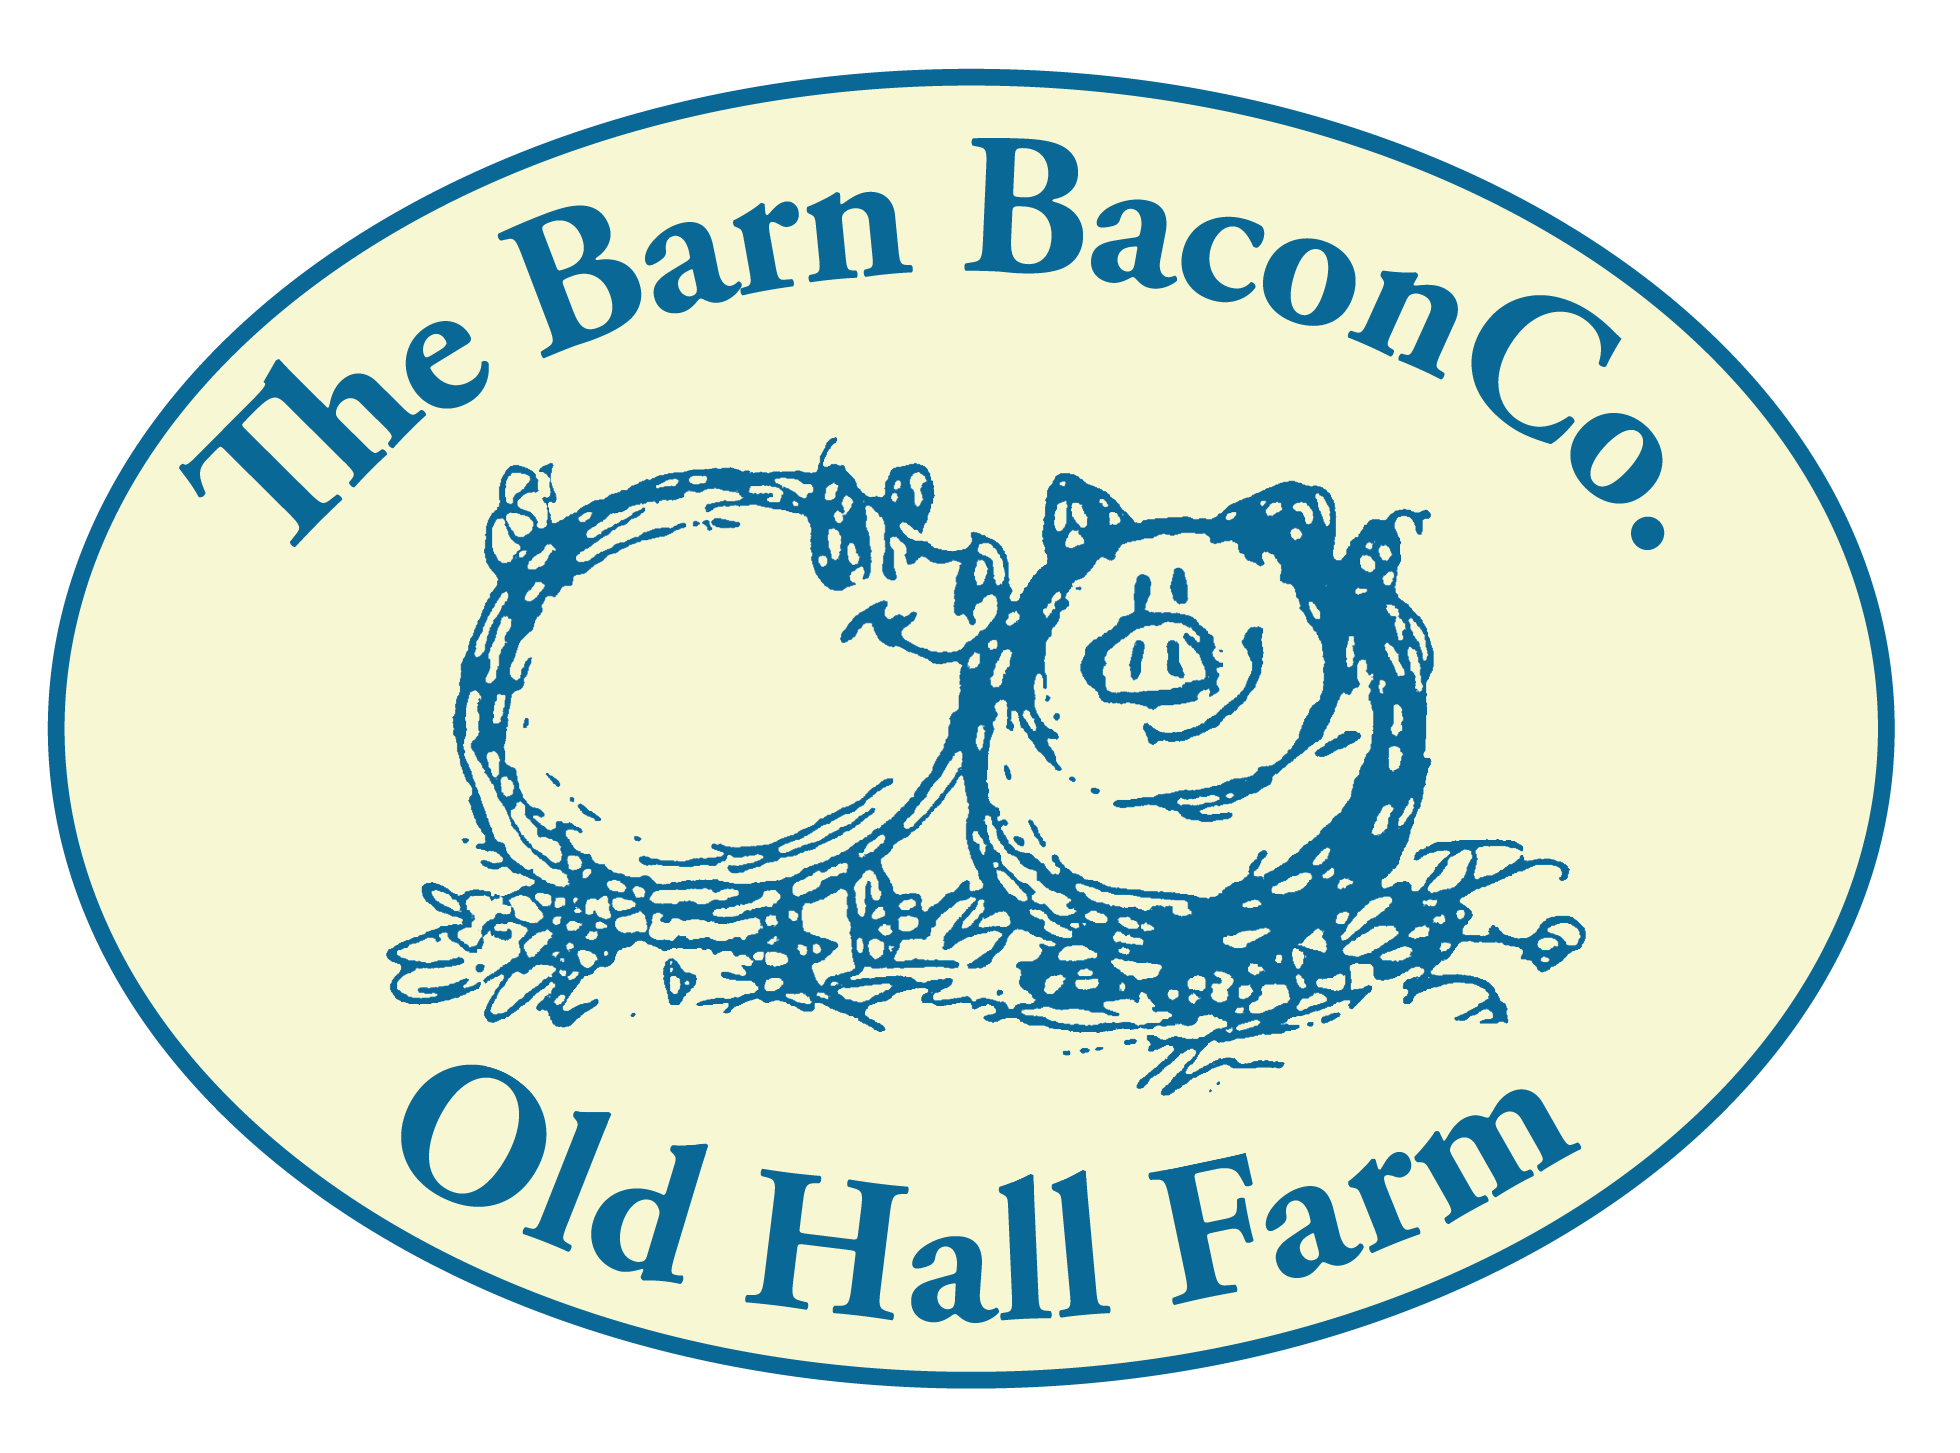 The Barn Bacon Co.